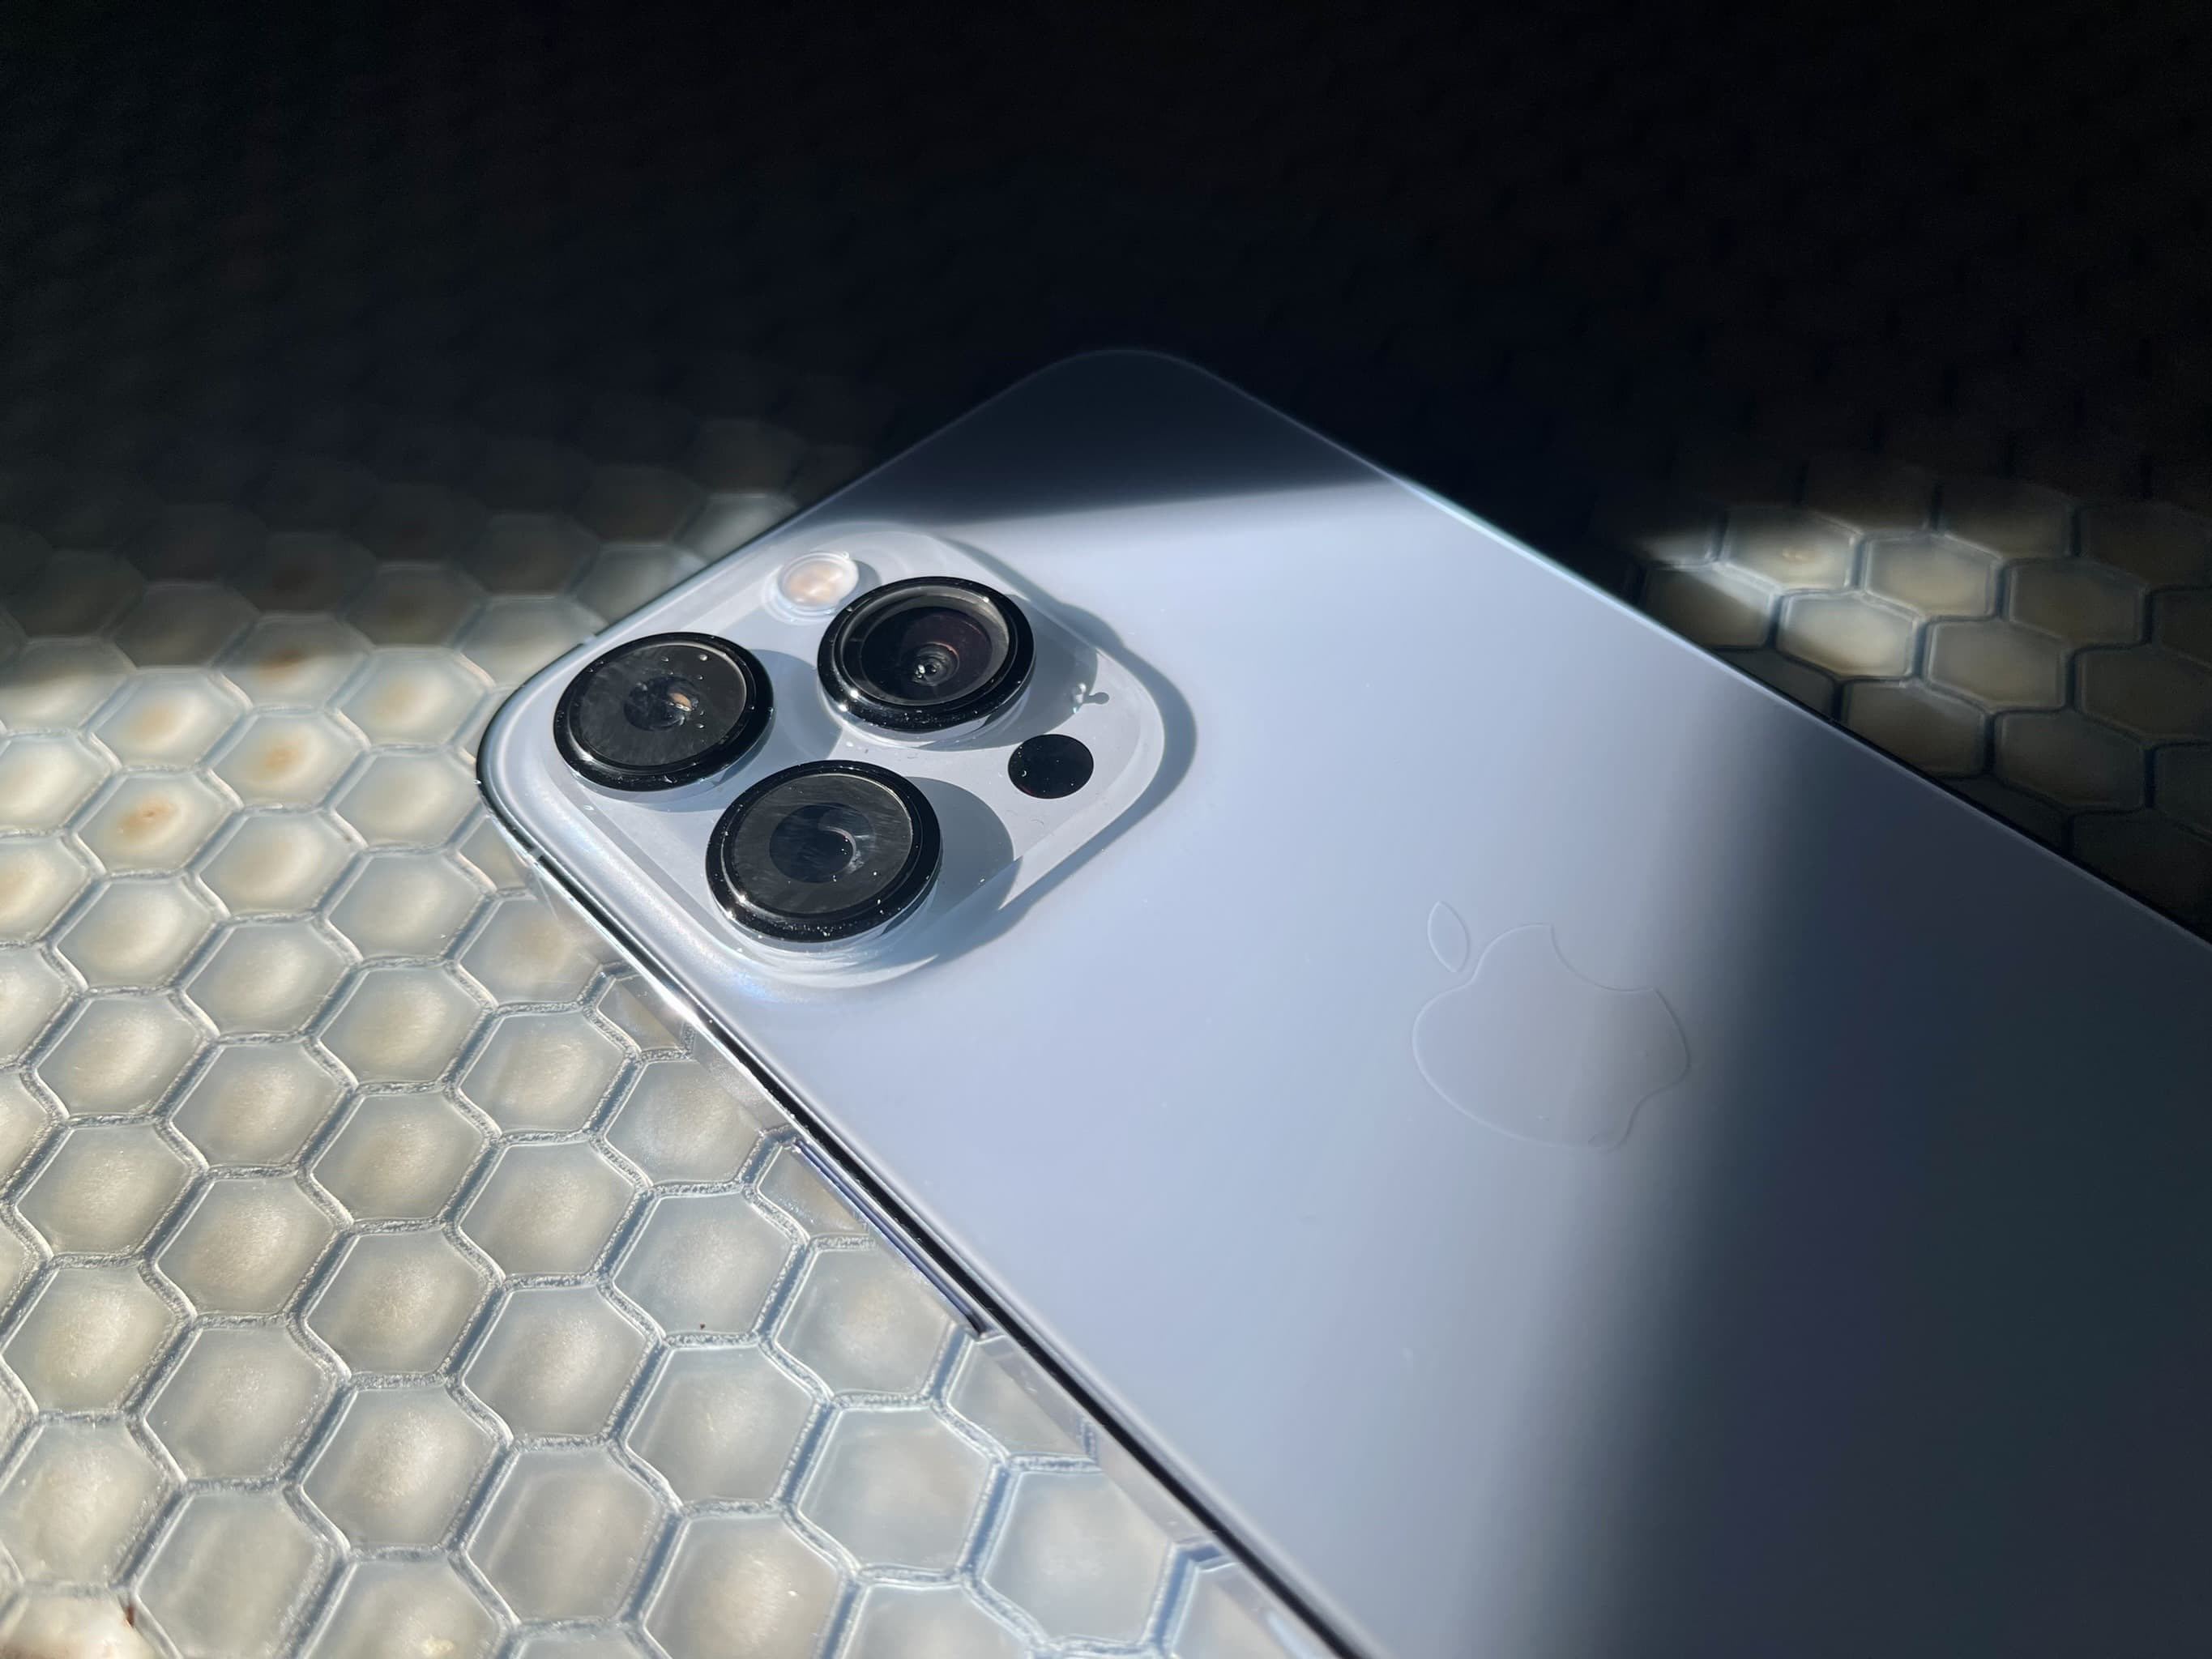 Personally, I love the iPhone 13 Pro's camera module. And no, it doesn't induce trypophobia